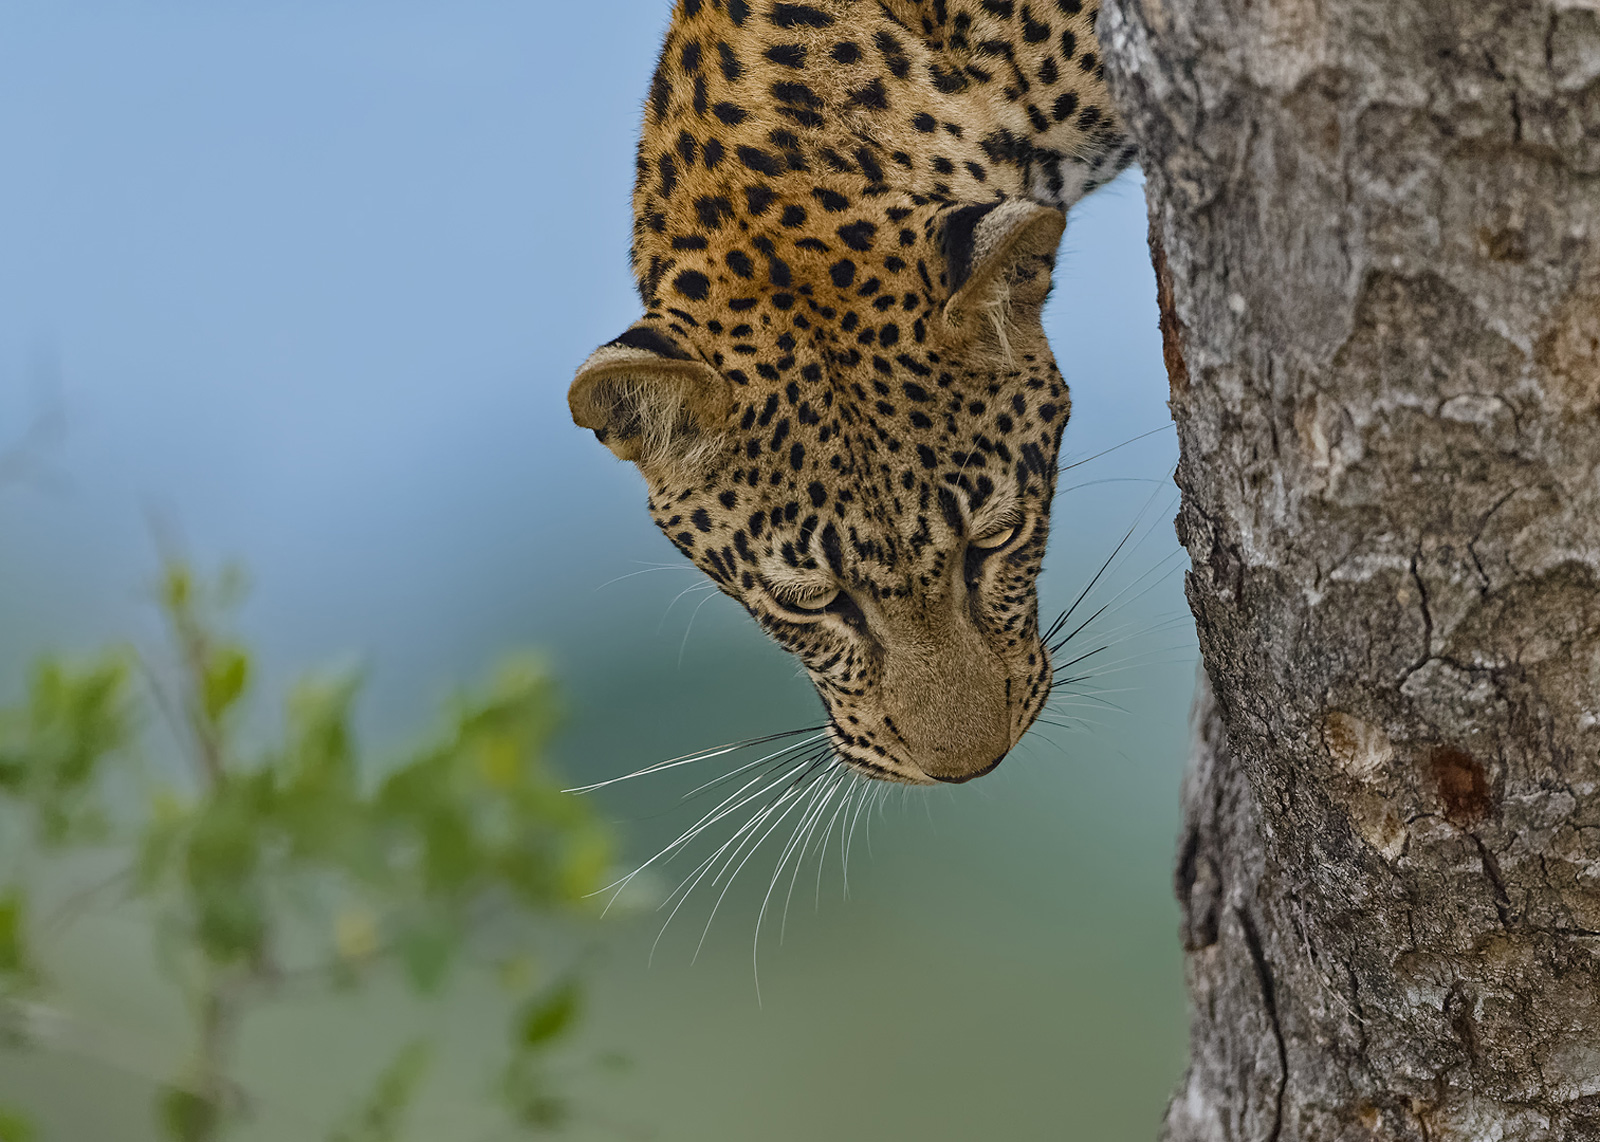 """Downward-facing leopard"" in Londolozi Private Game Reserve, South Africa ©Willem Kruger"